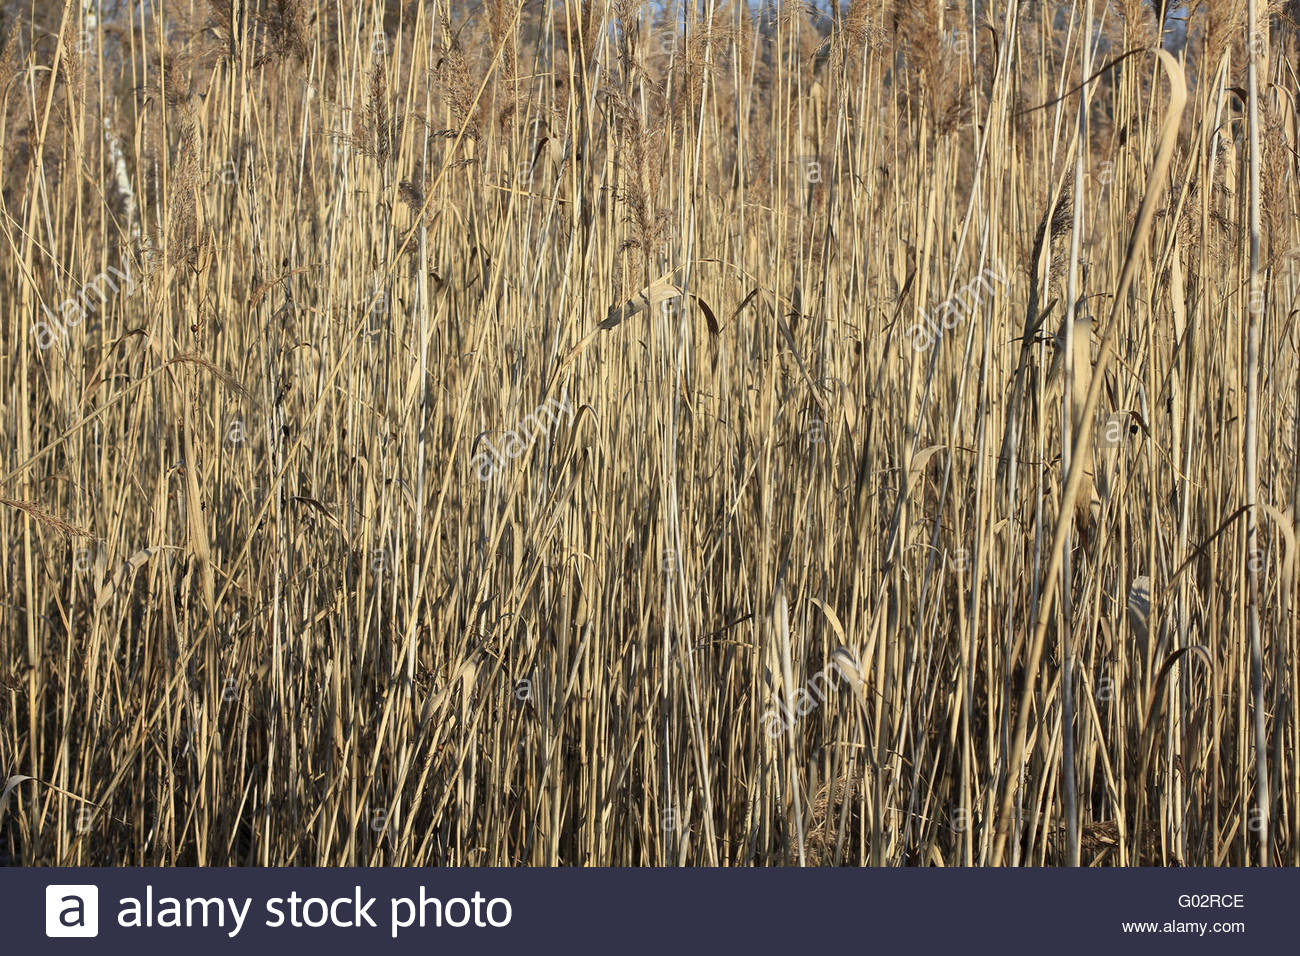 Cane brake on a pond in winter - Stock Image